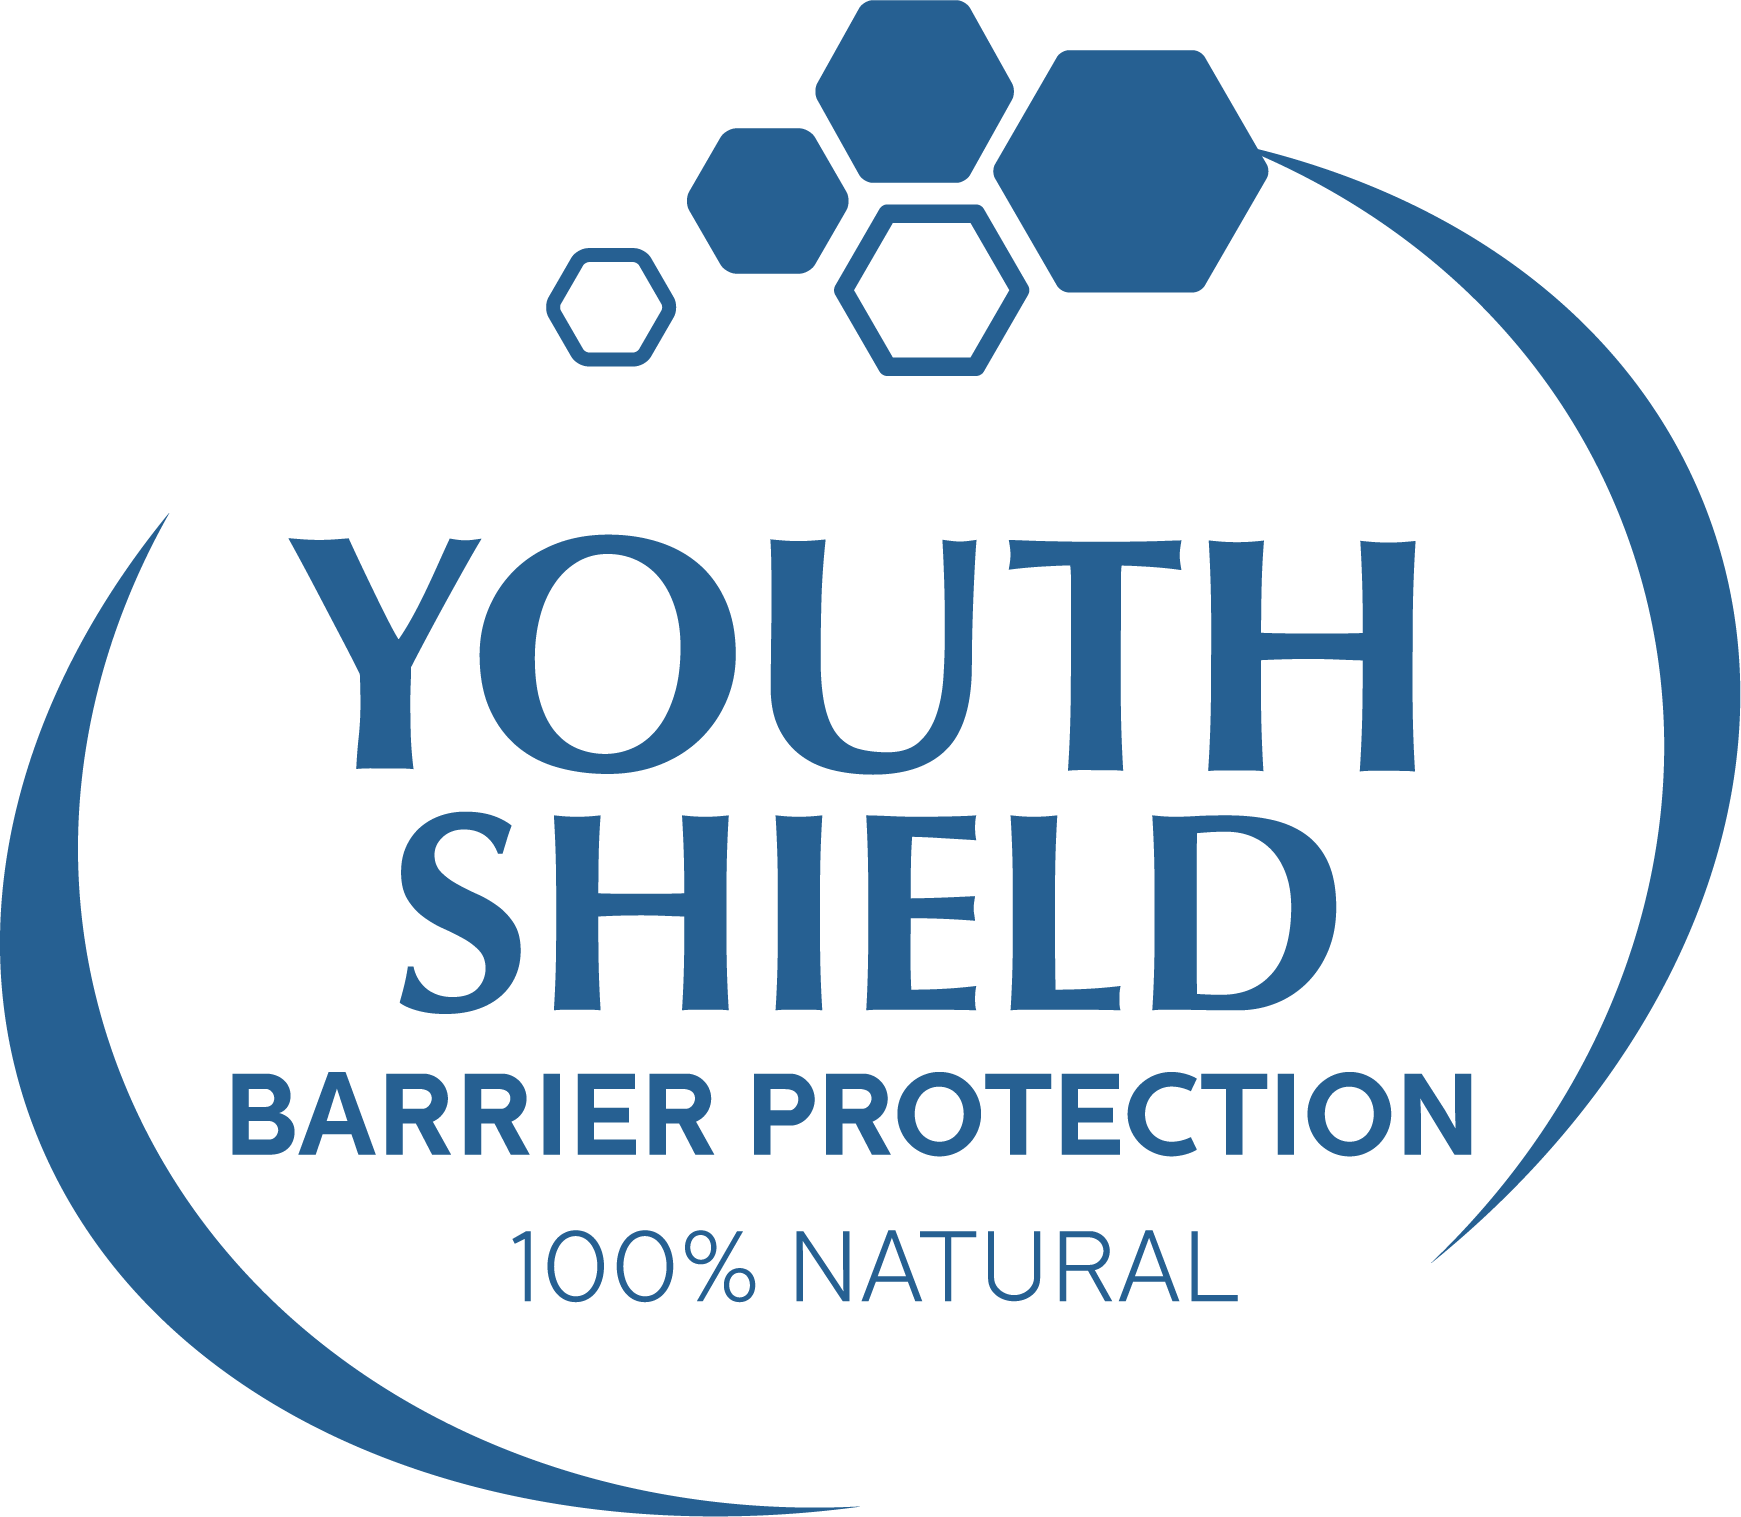 youth-sheild-1-outline.png